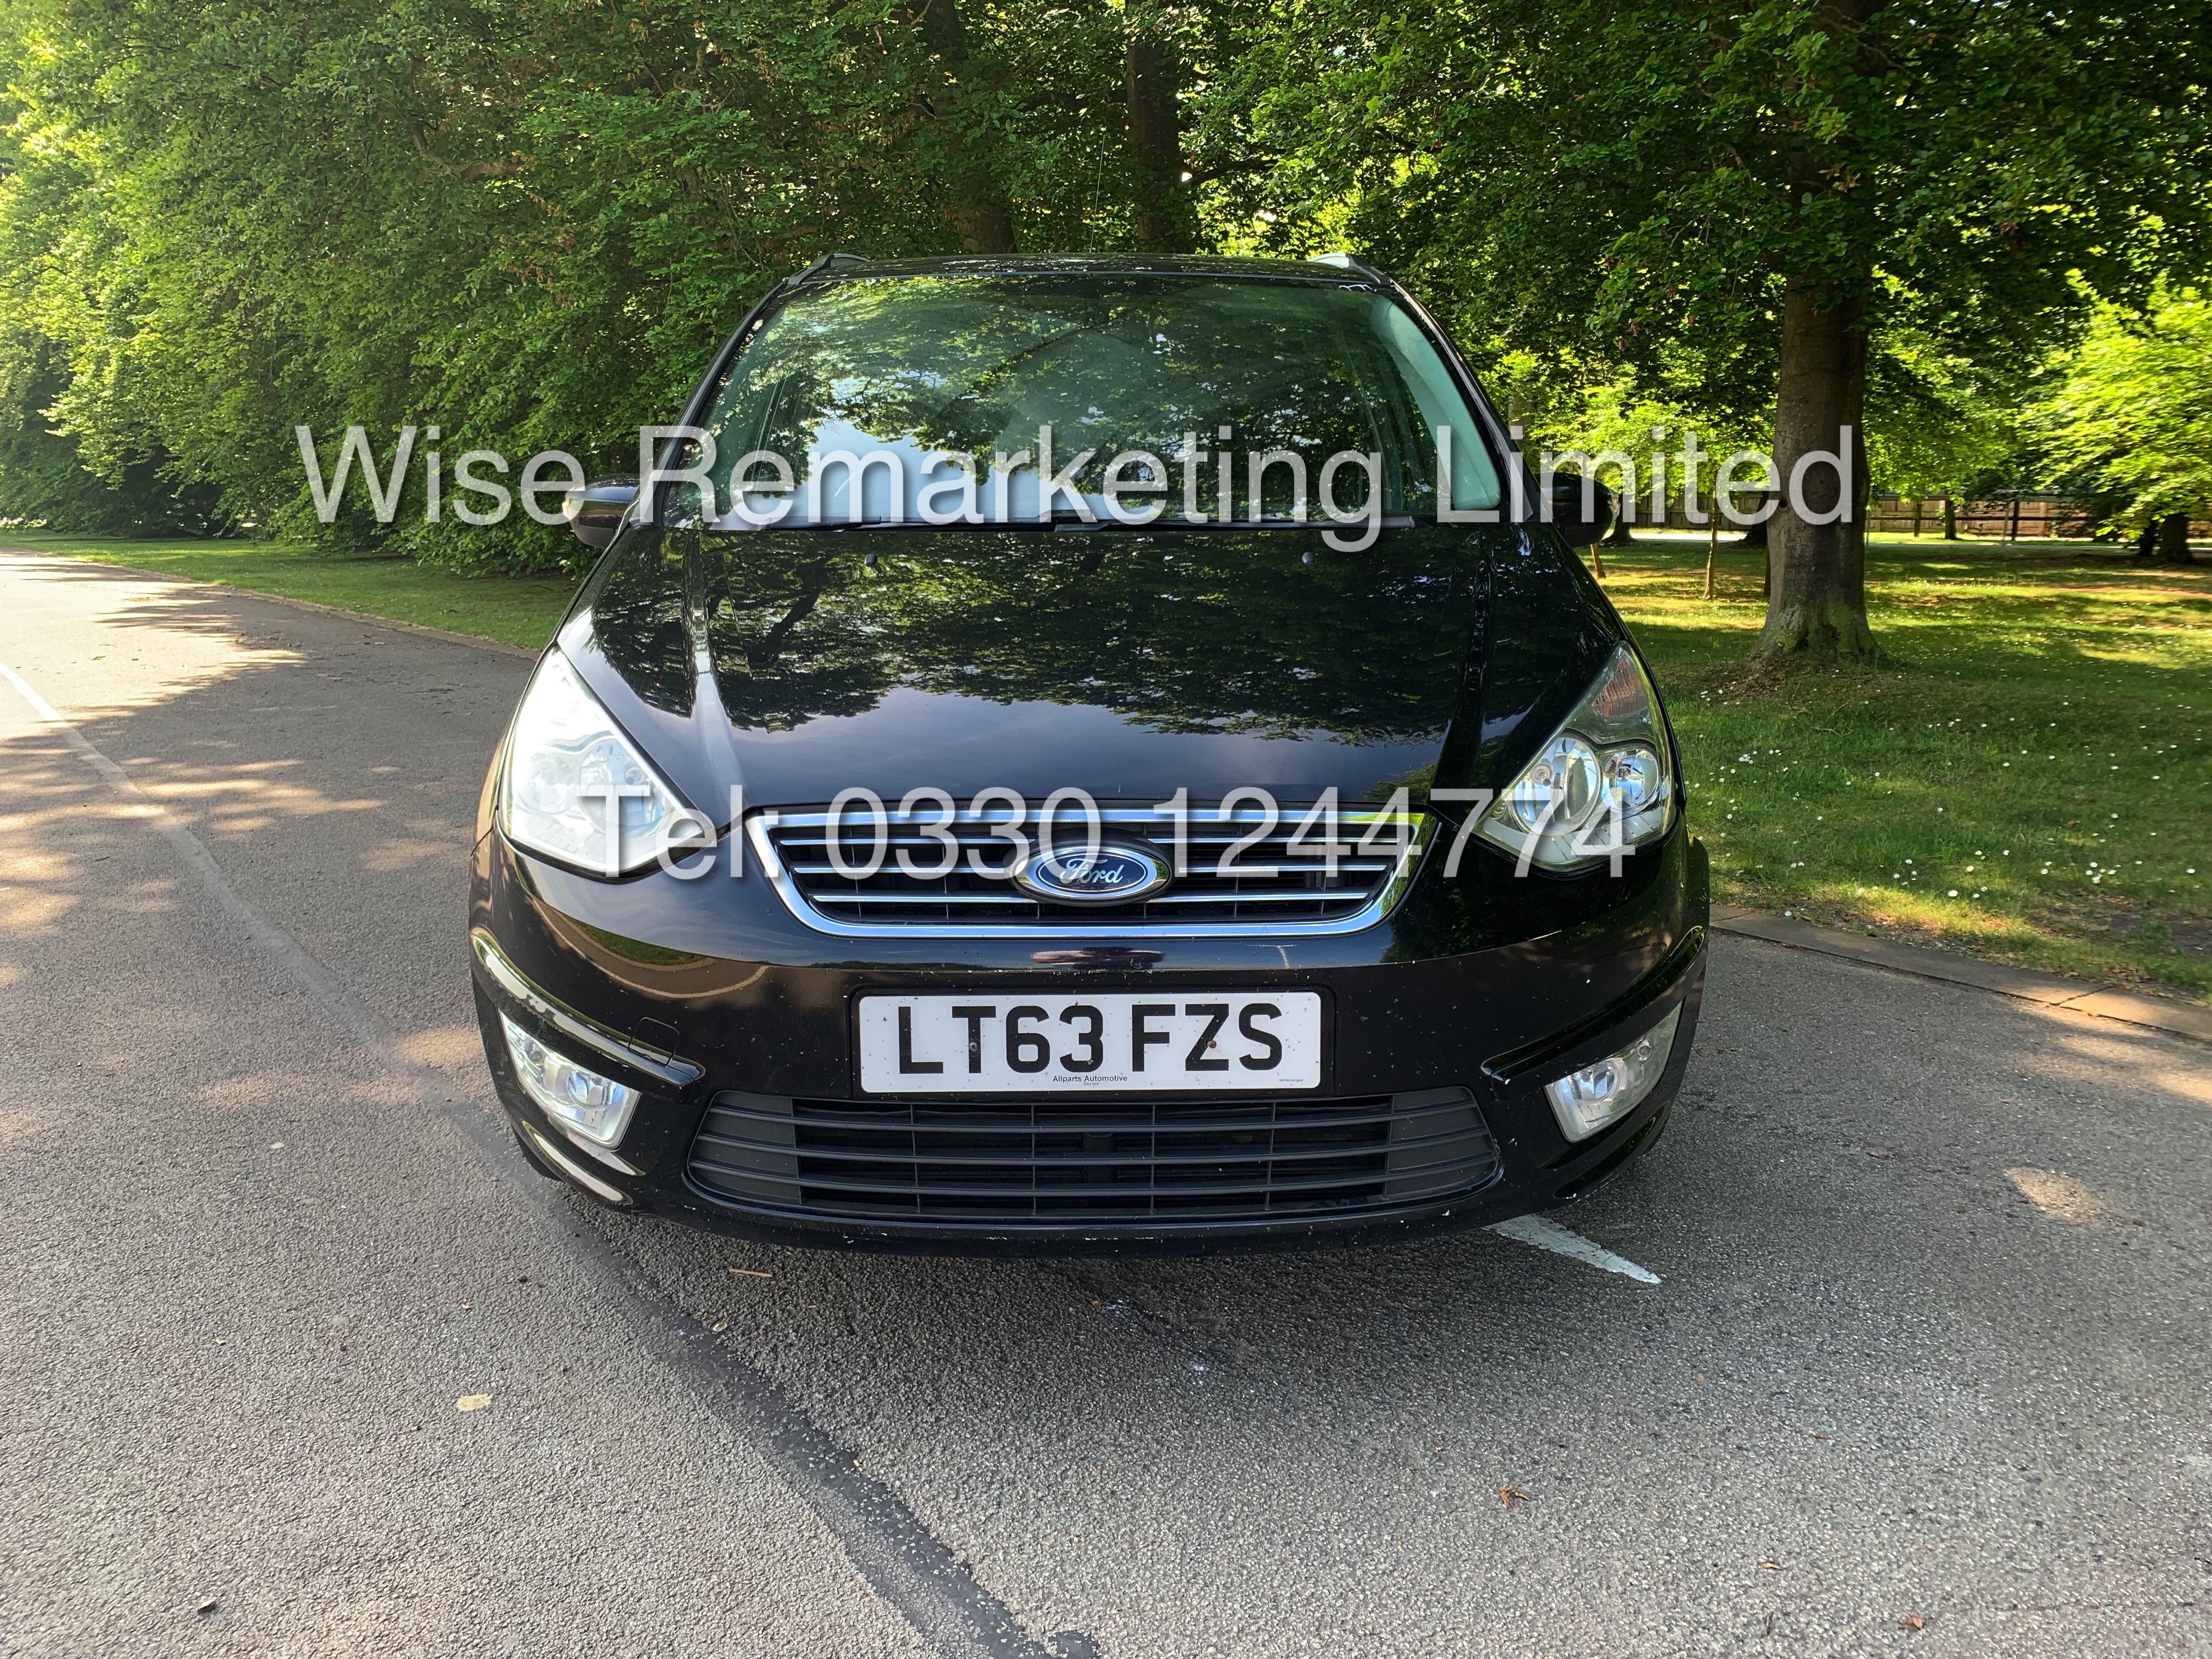 FORD GALAXY ZETEC 2.0L TDCI AUTO 7 SEATER MPV 63 REG *1 OWNER* - Image 8 of 20